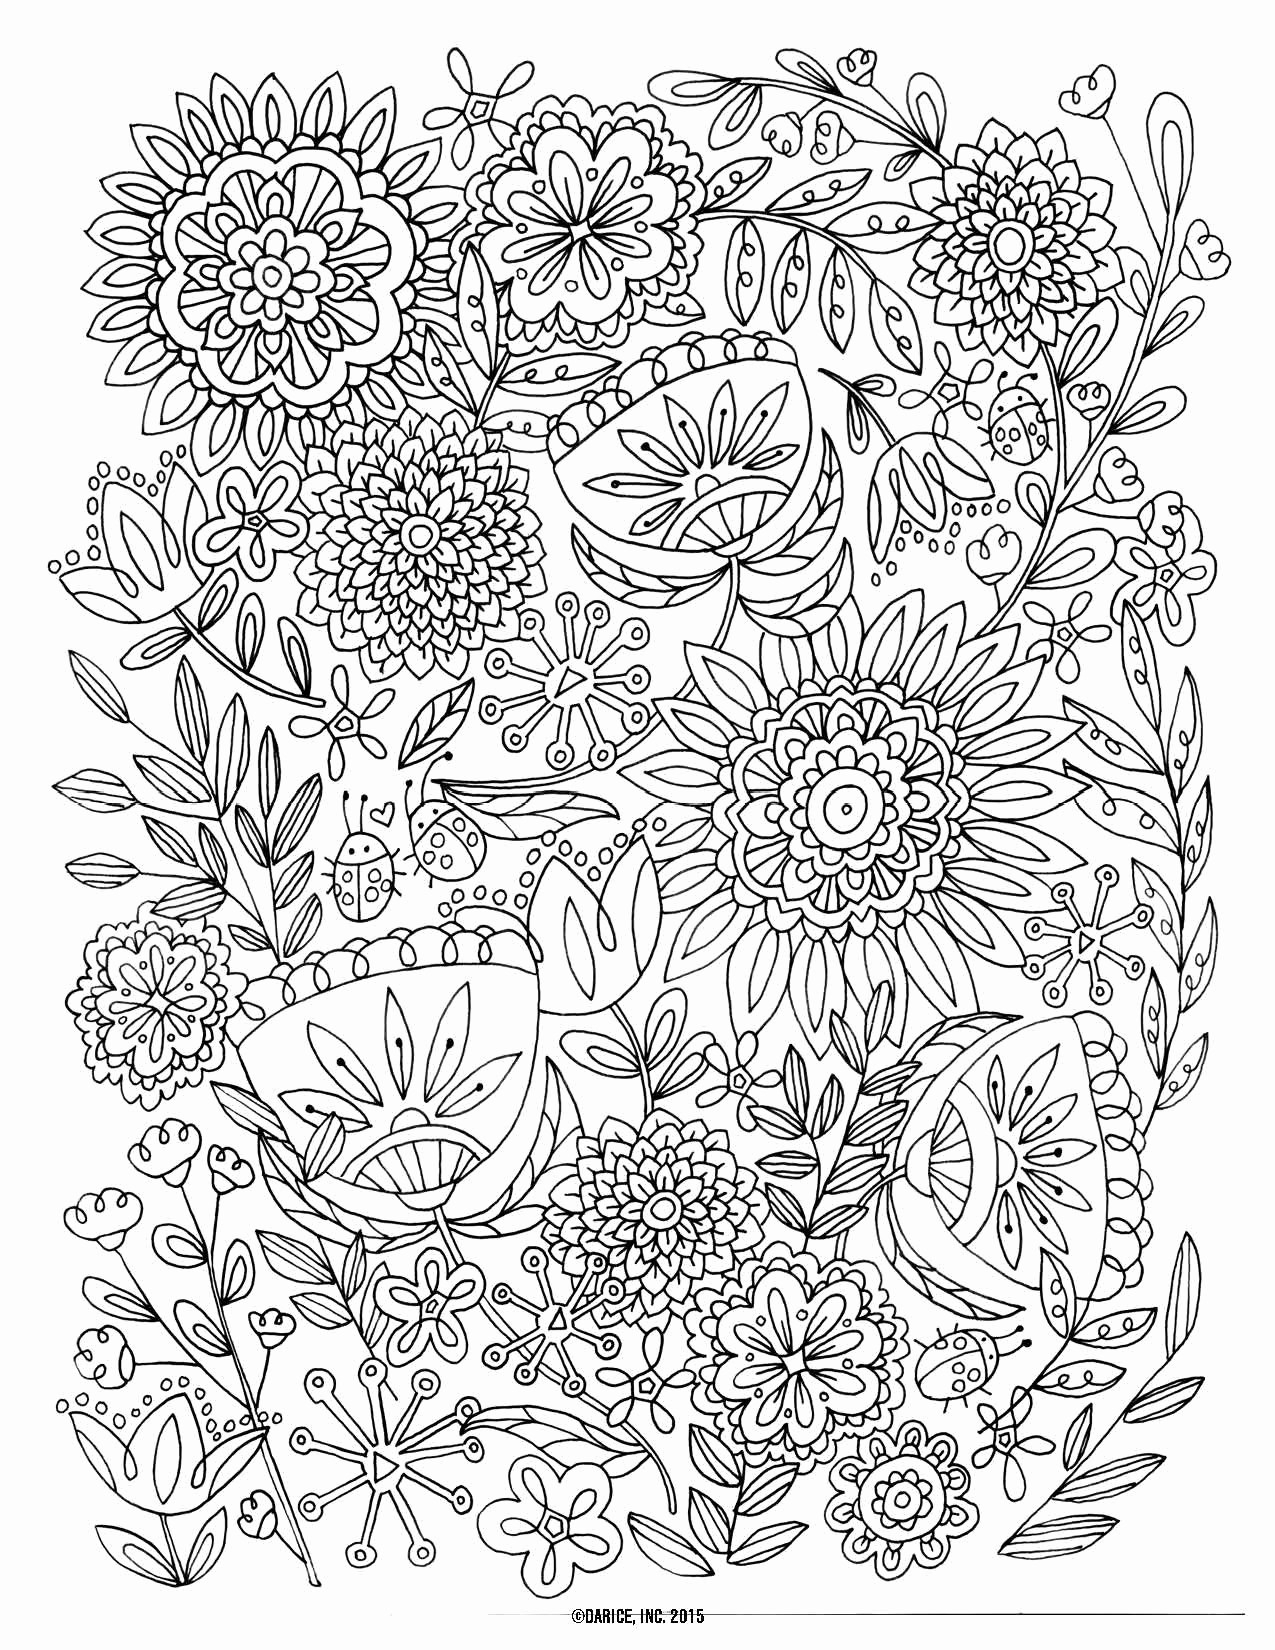 cancer awareness coloring pages Download-Free Printables Coloring Pages for Kids Gallery Best Free Printable Coloring Sheet with Ribbon Design 5-e